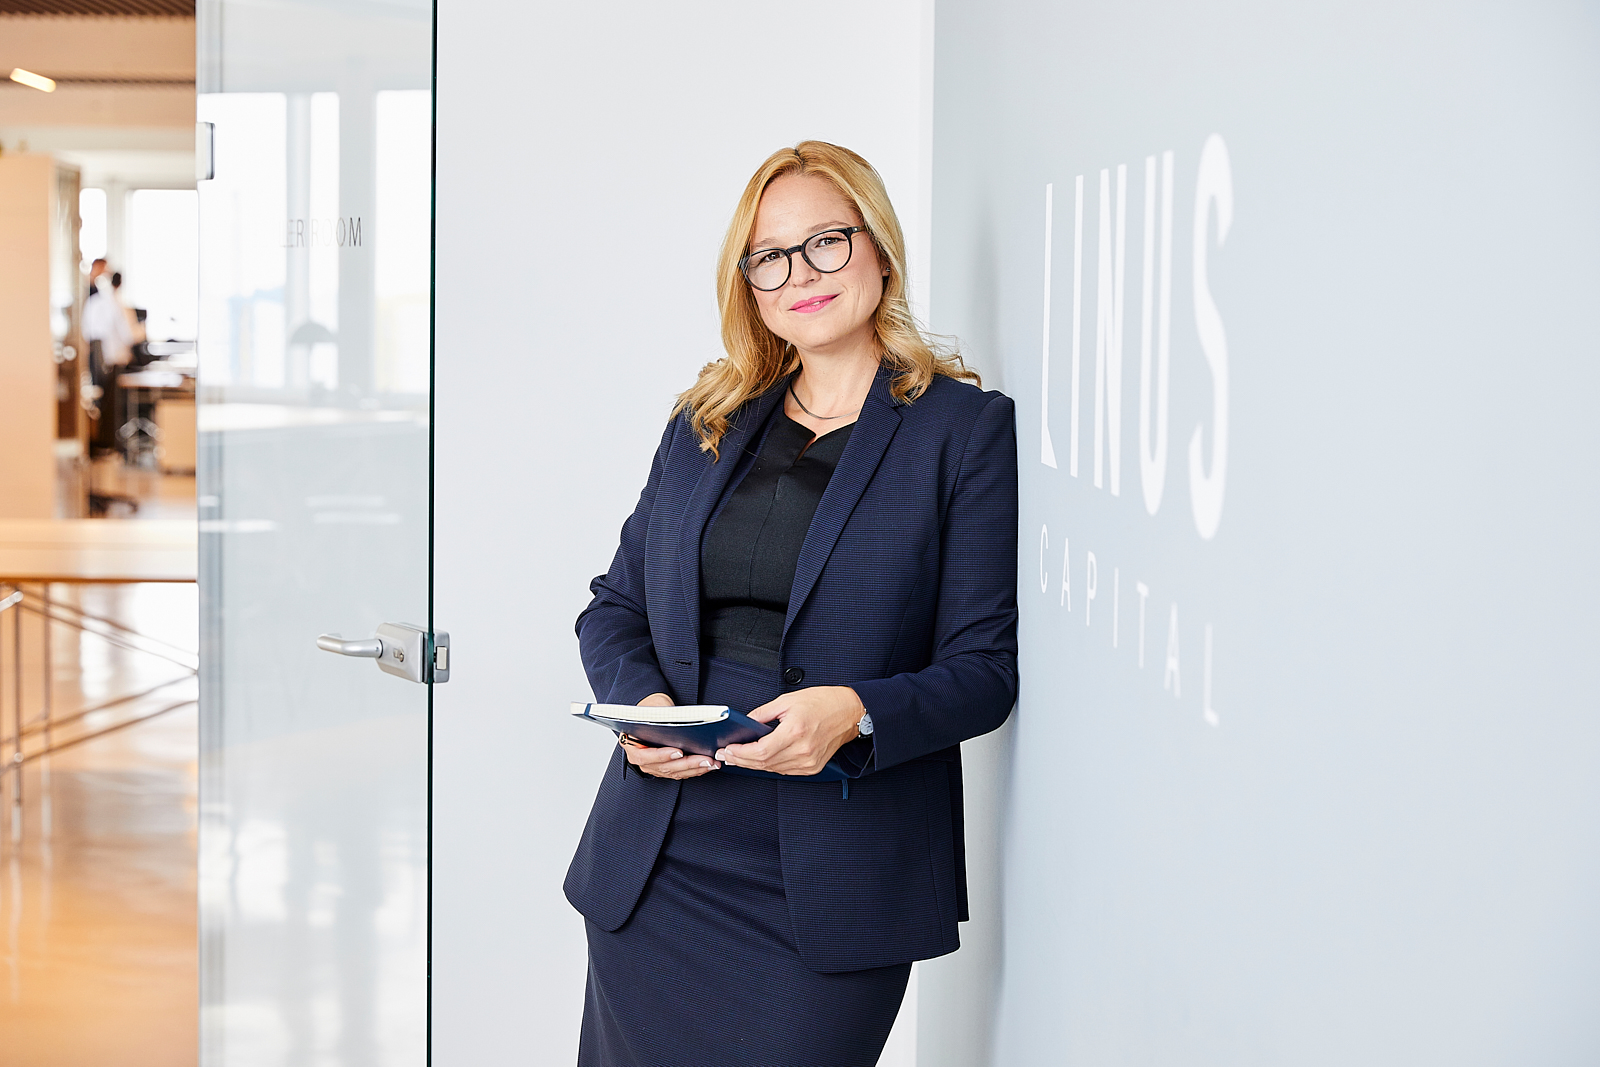 LINUS Digital Finance beruft Julia Kneist zum Chief Risk Officer